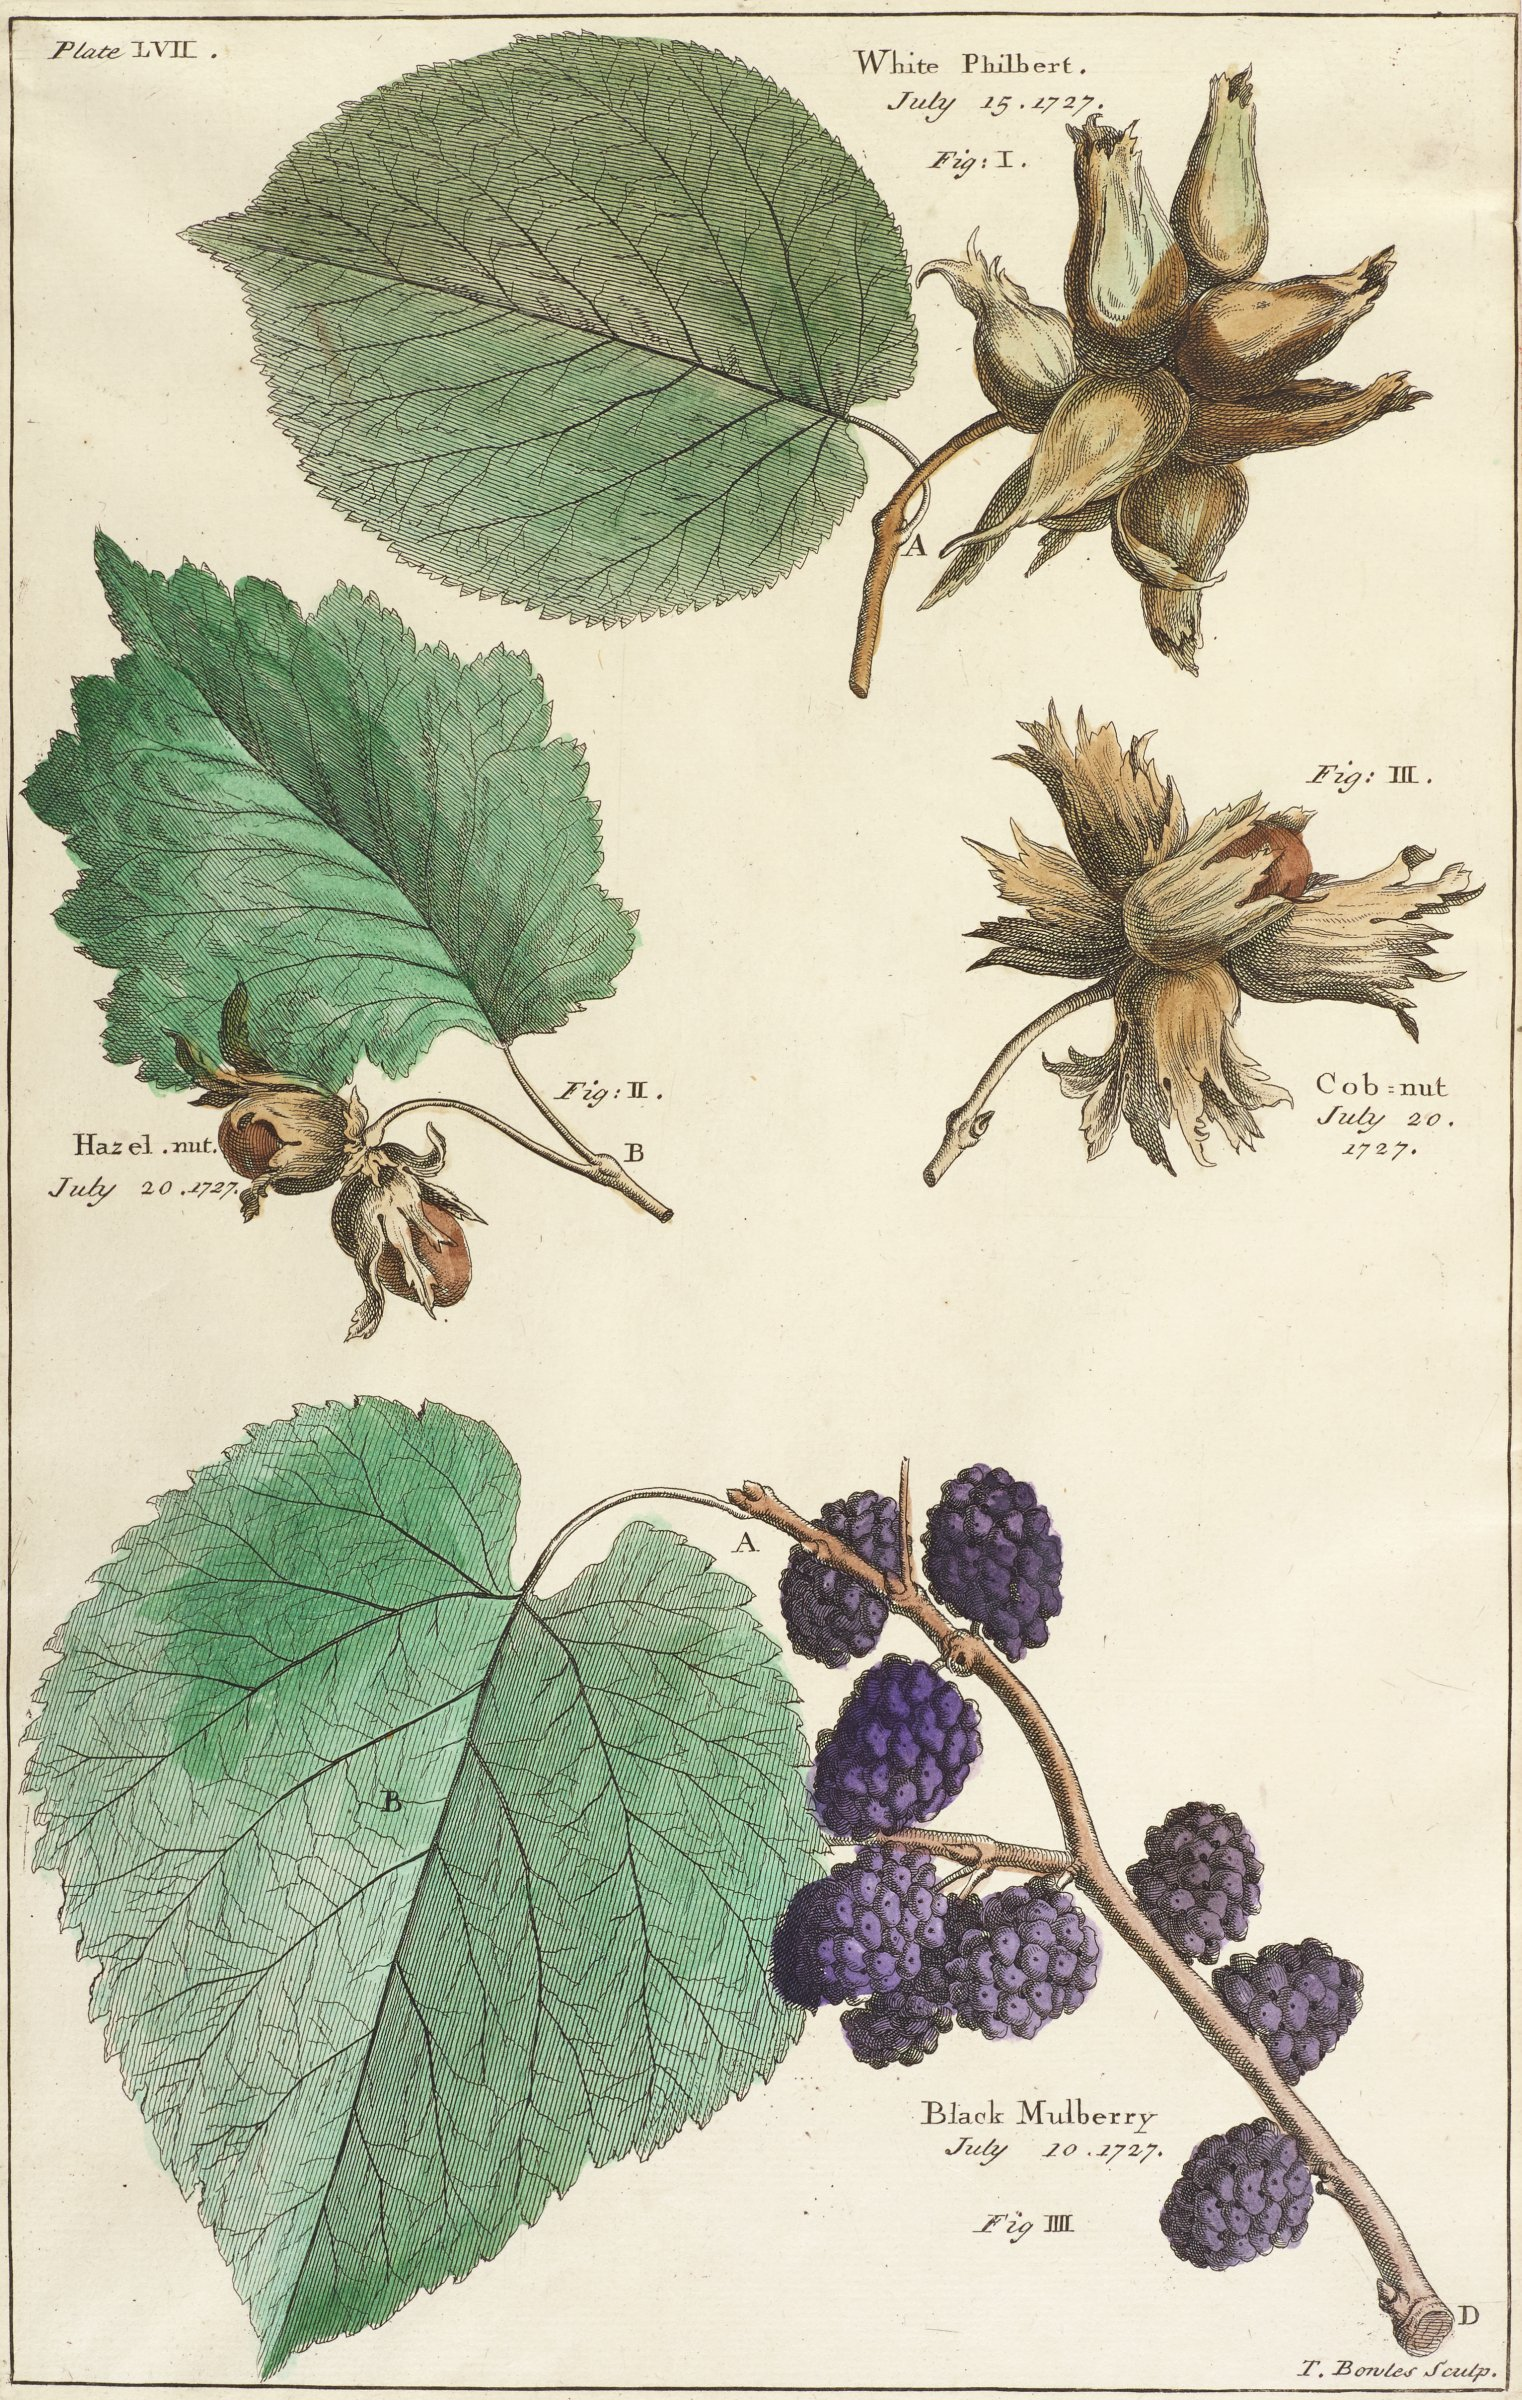 Botanical print depicting four different plants: white philberts, hazelnuts, a cobnut, and black mulberries. They are framed within a thin black outline.